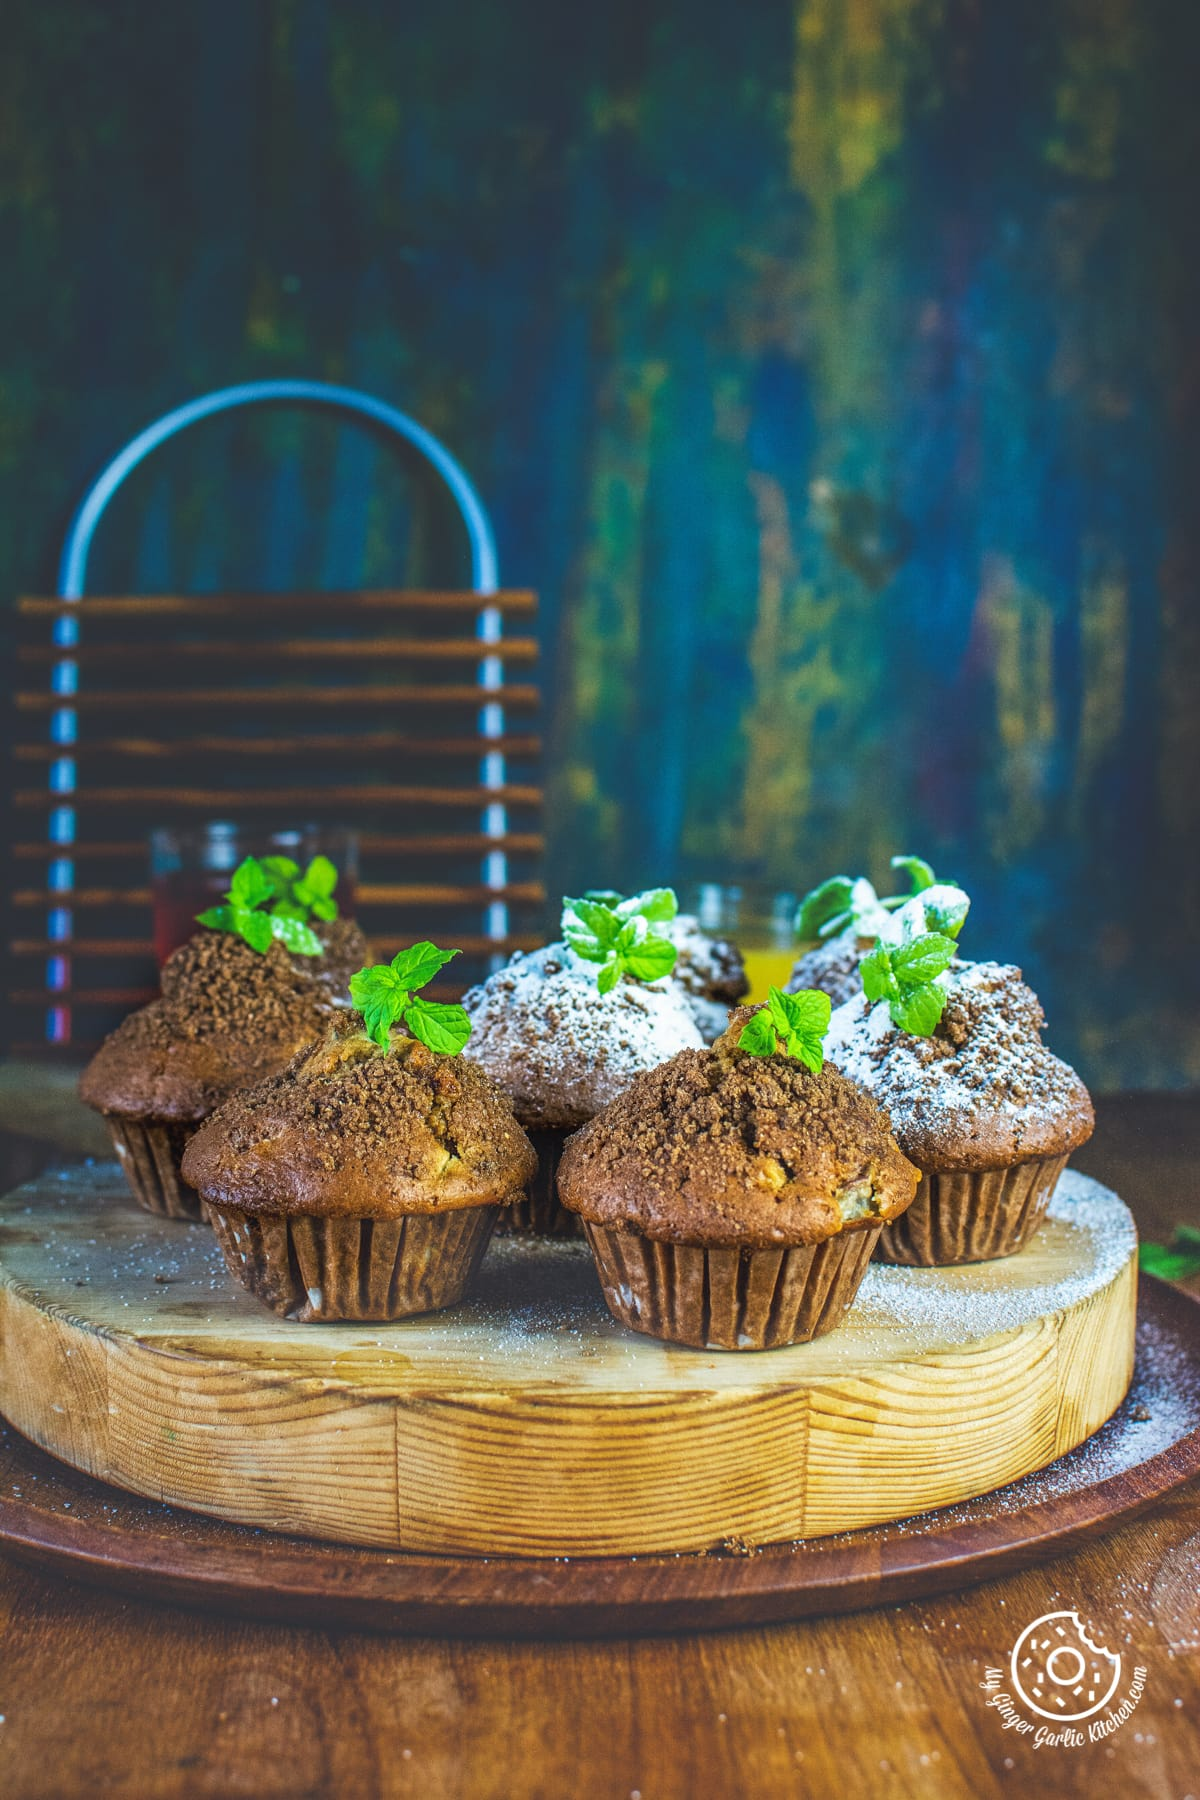 whole wheat peach muffins topped with mint leaves served on a wooden board